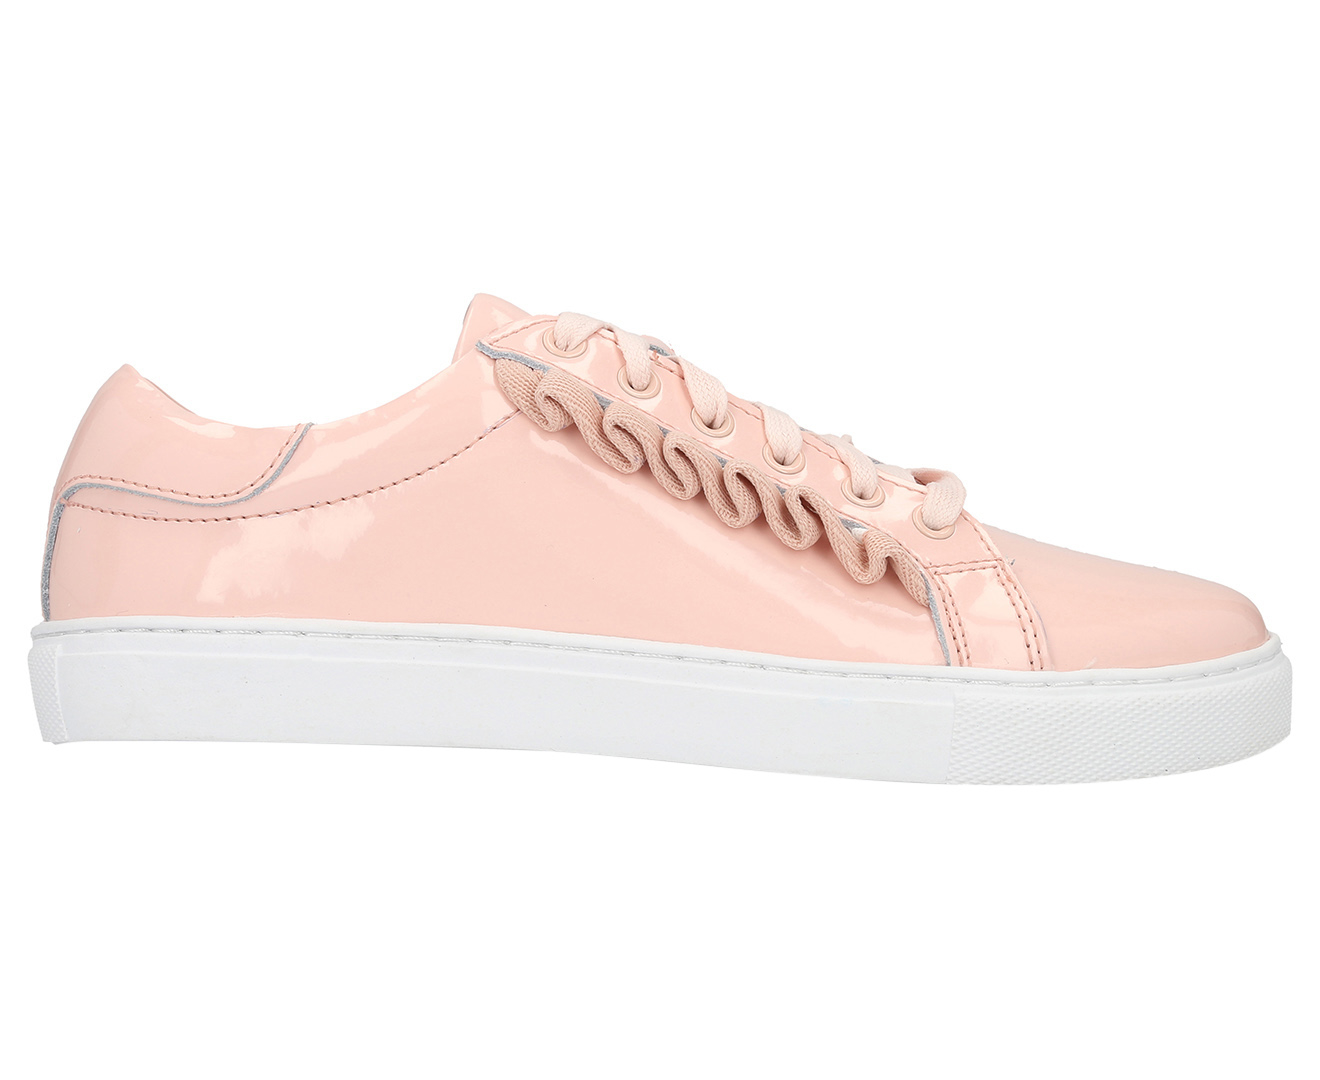 Walnut Melbourne Women's Alexis Frill Sneaker Patent Pink